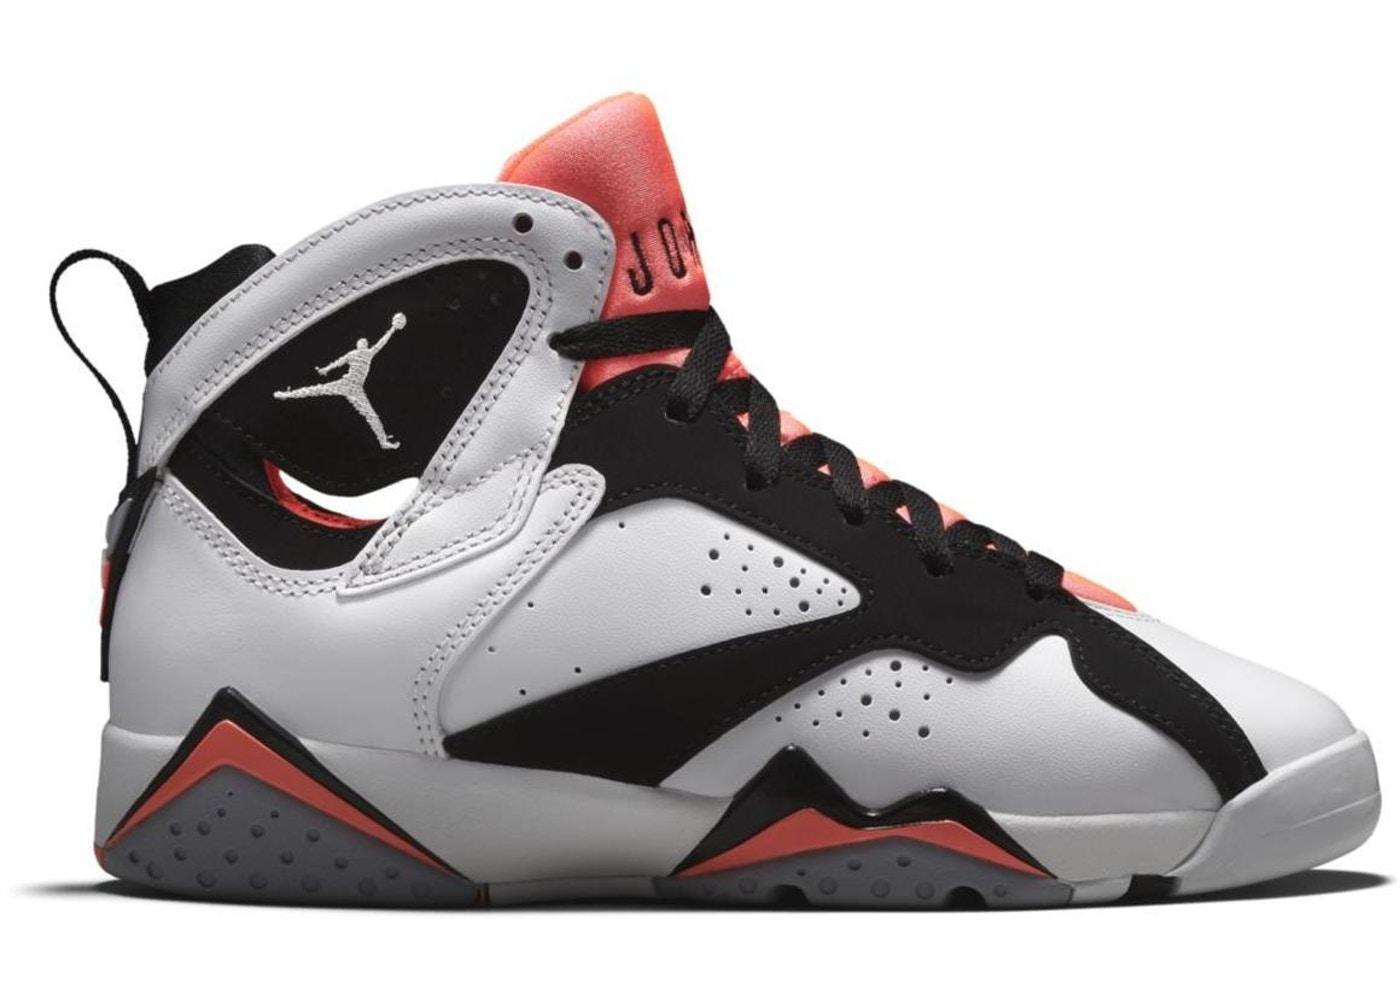 best service 8ae3b 1deb1 Jordan 7 Retro Hot Lava (GS) - 442960-106